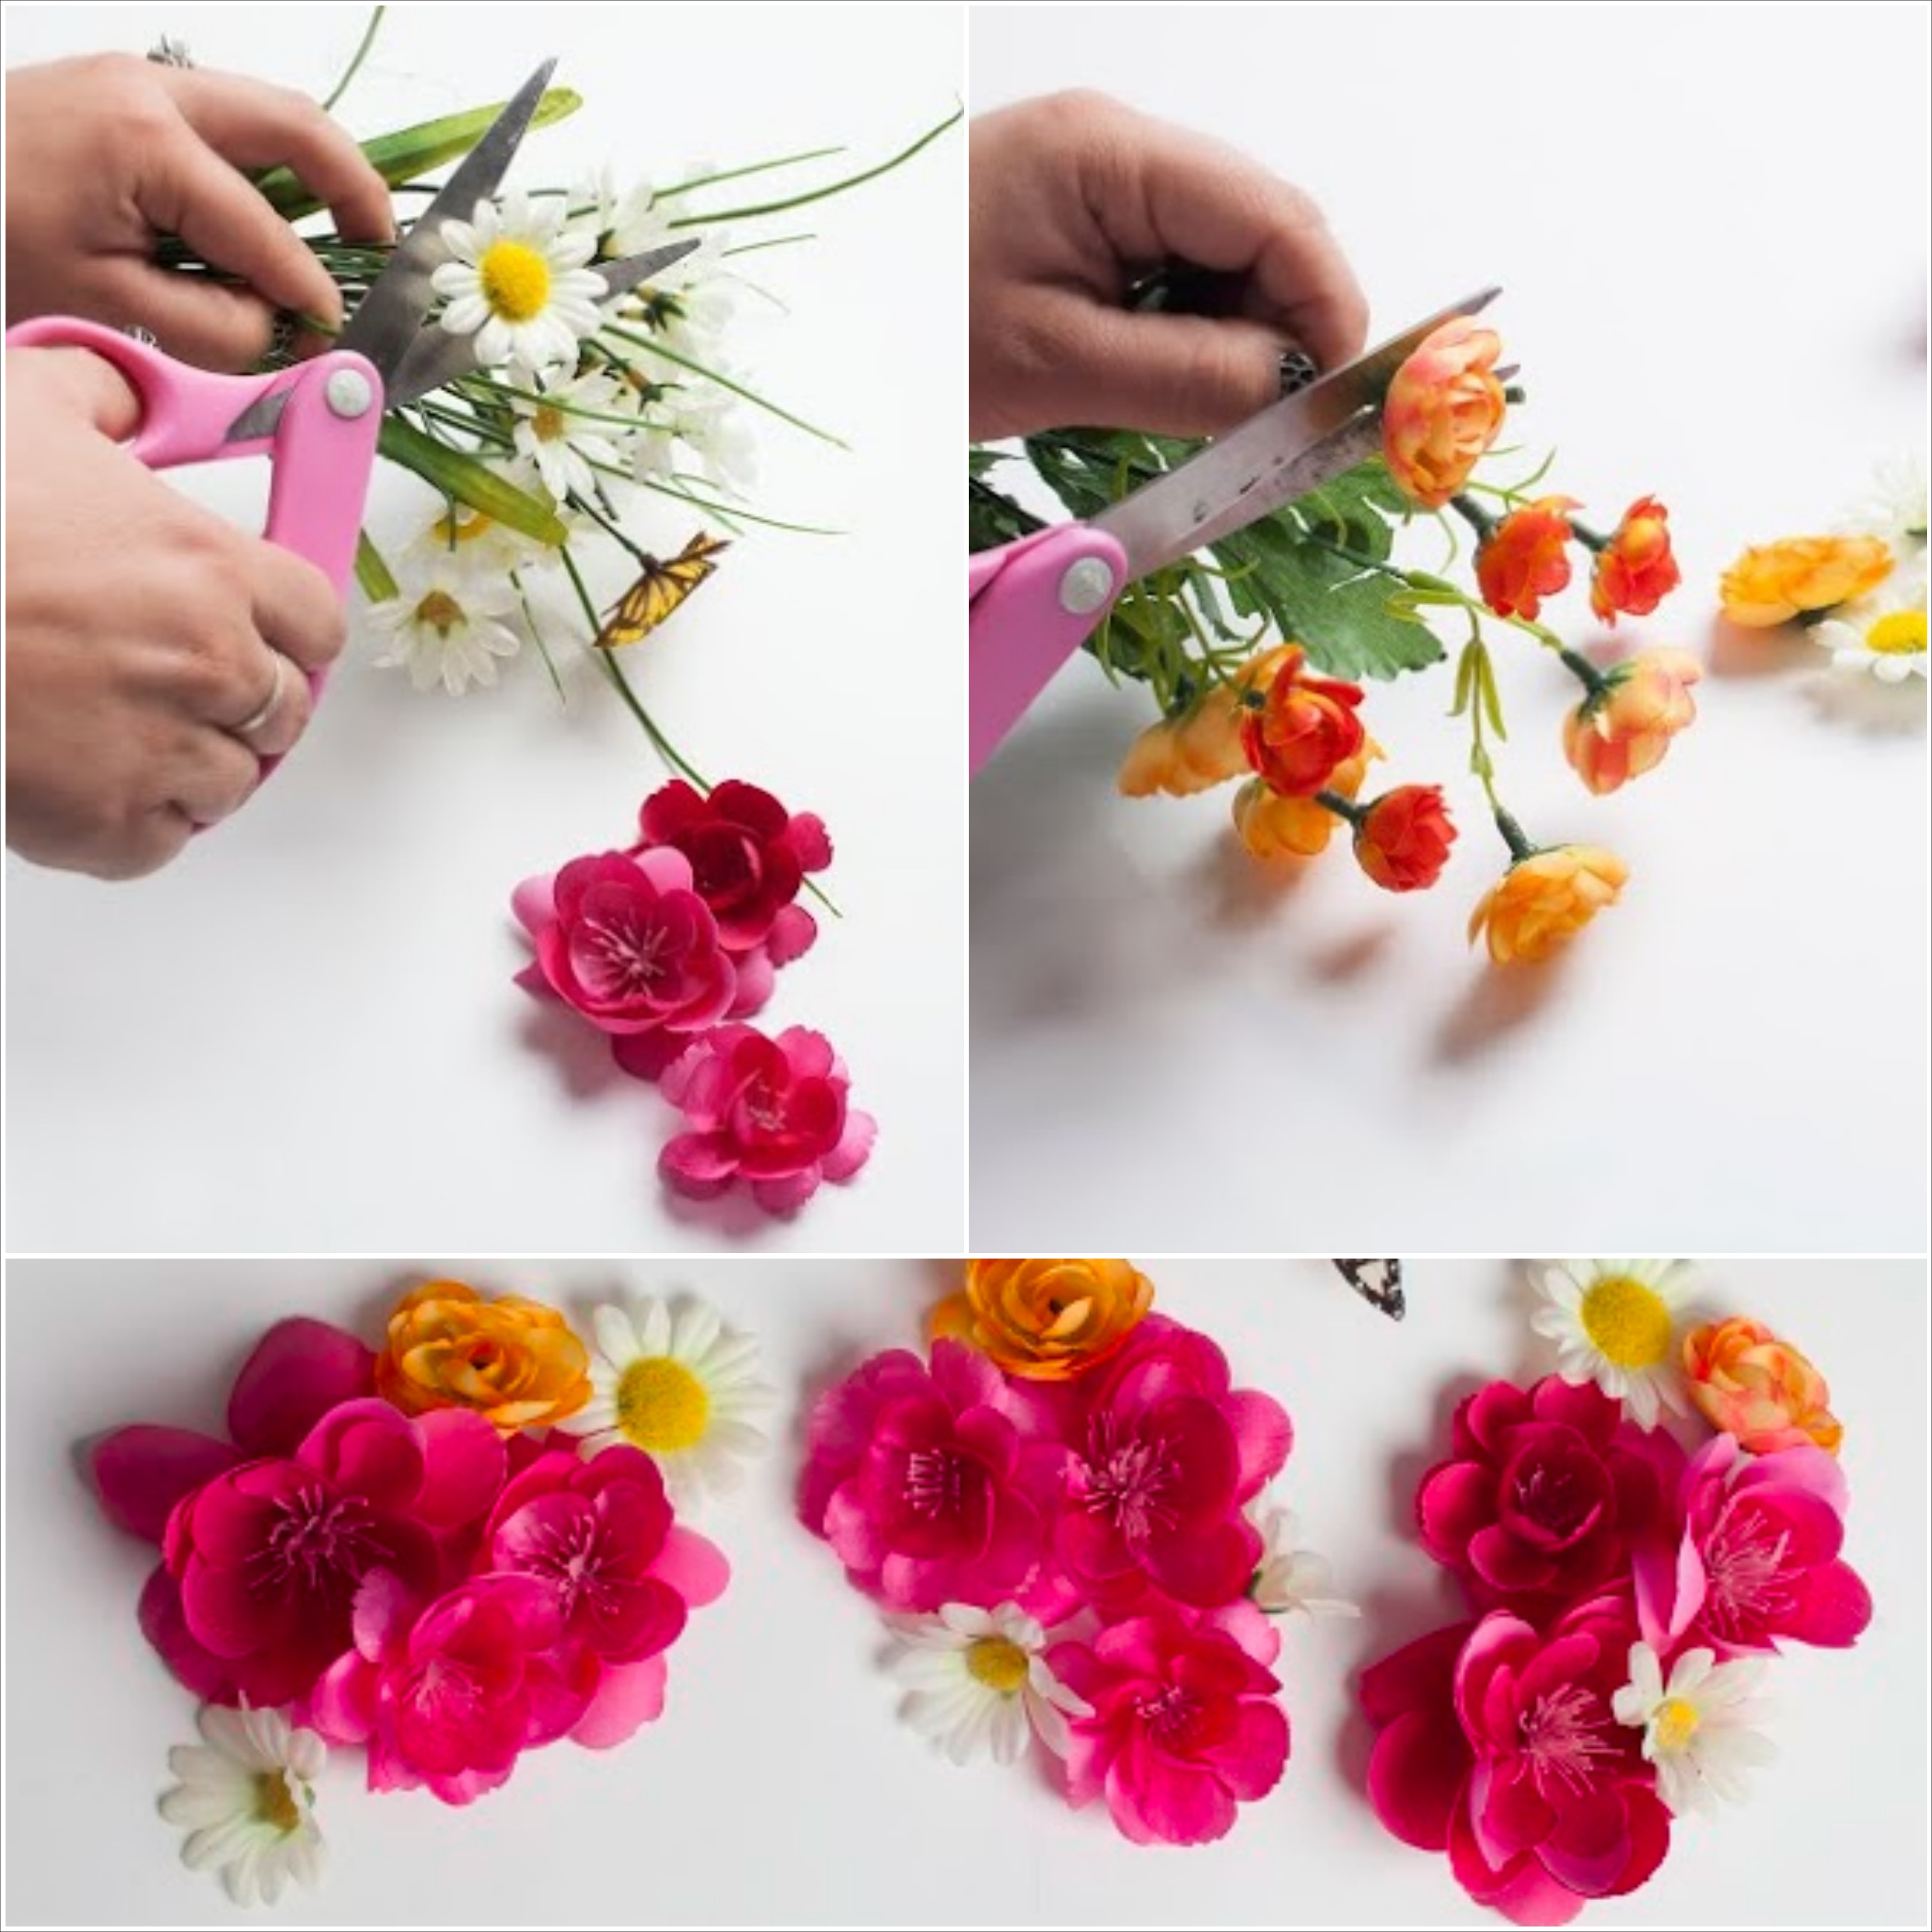 Diy floral crowns depending on the size and color scheme youd like your flower crown to be select different varieties of flowers that create a unique blend izmirmasajfo Images